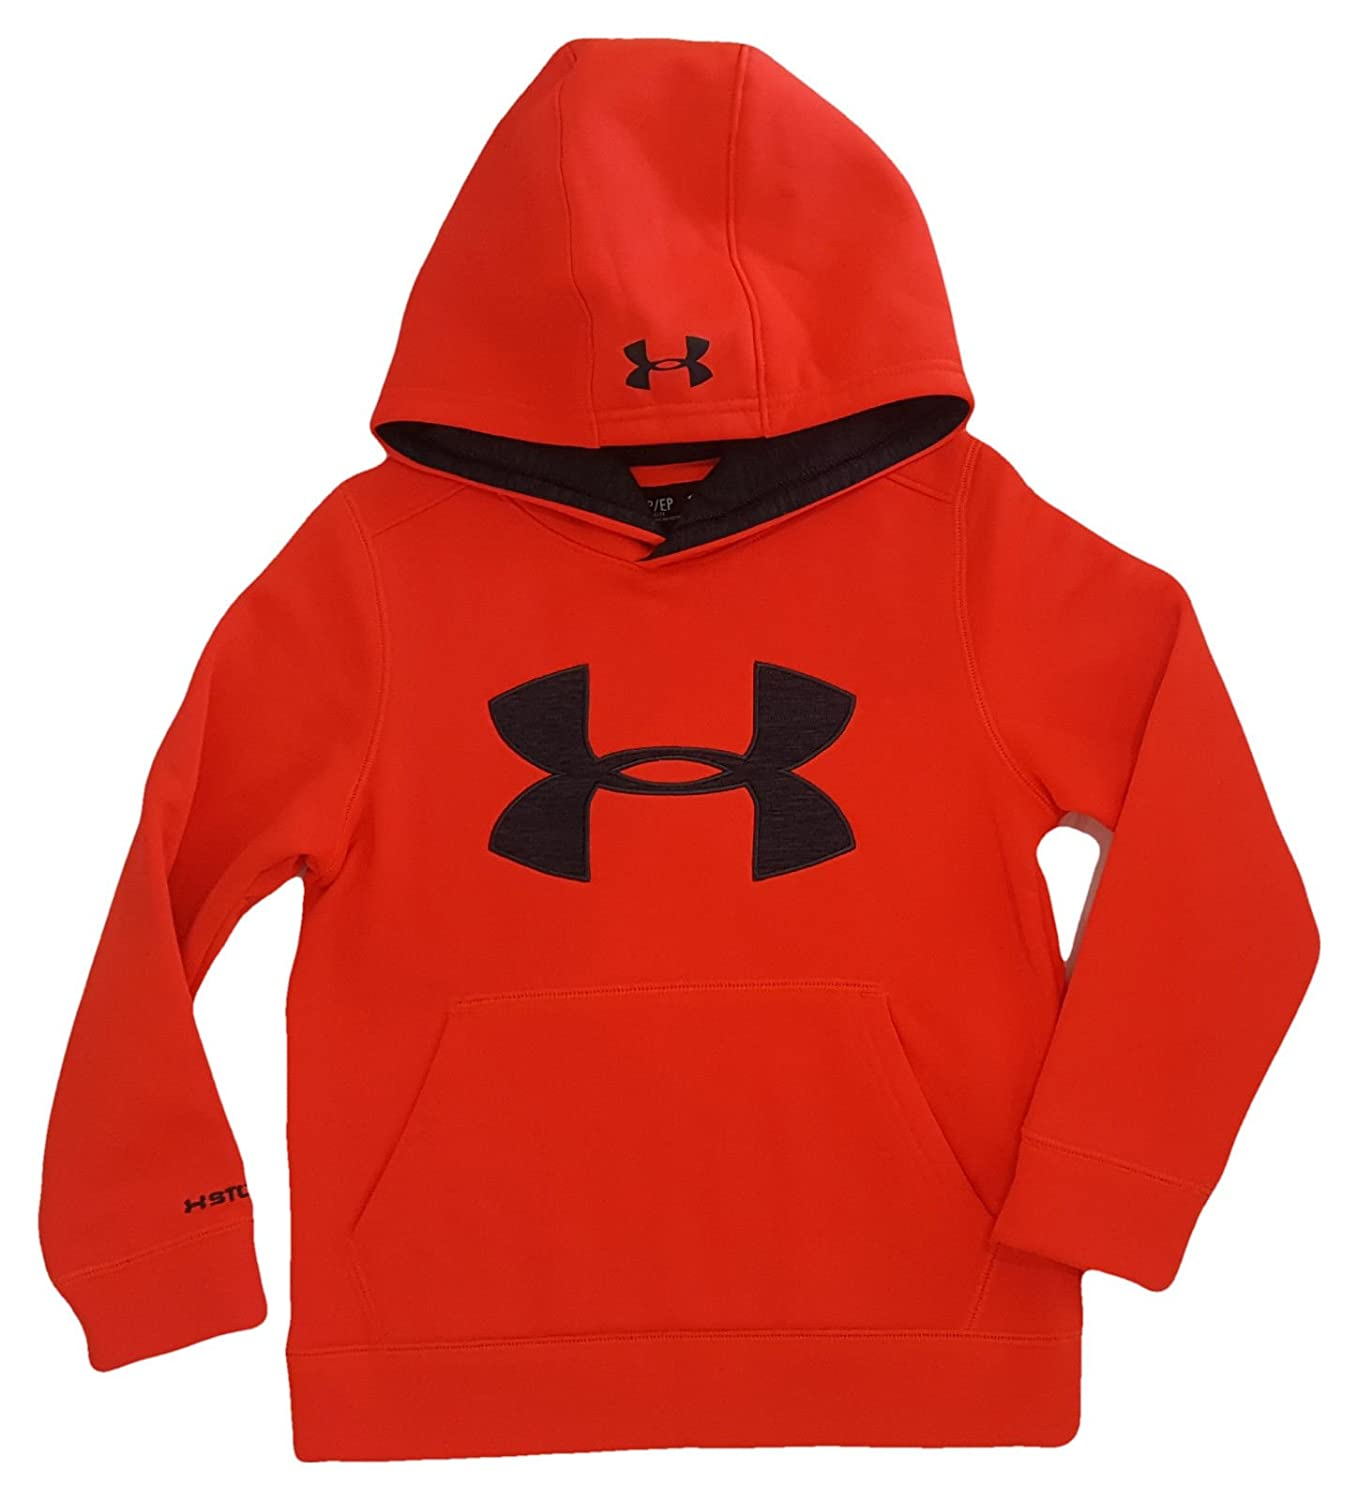 Under Armour Boys Storm1 Water Resistant Hoodie Youth Sizes Green 378)